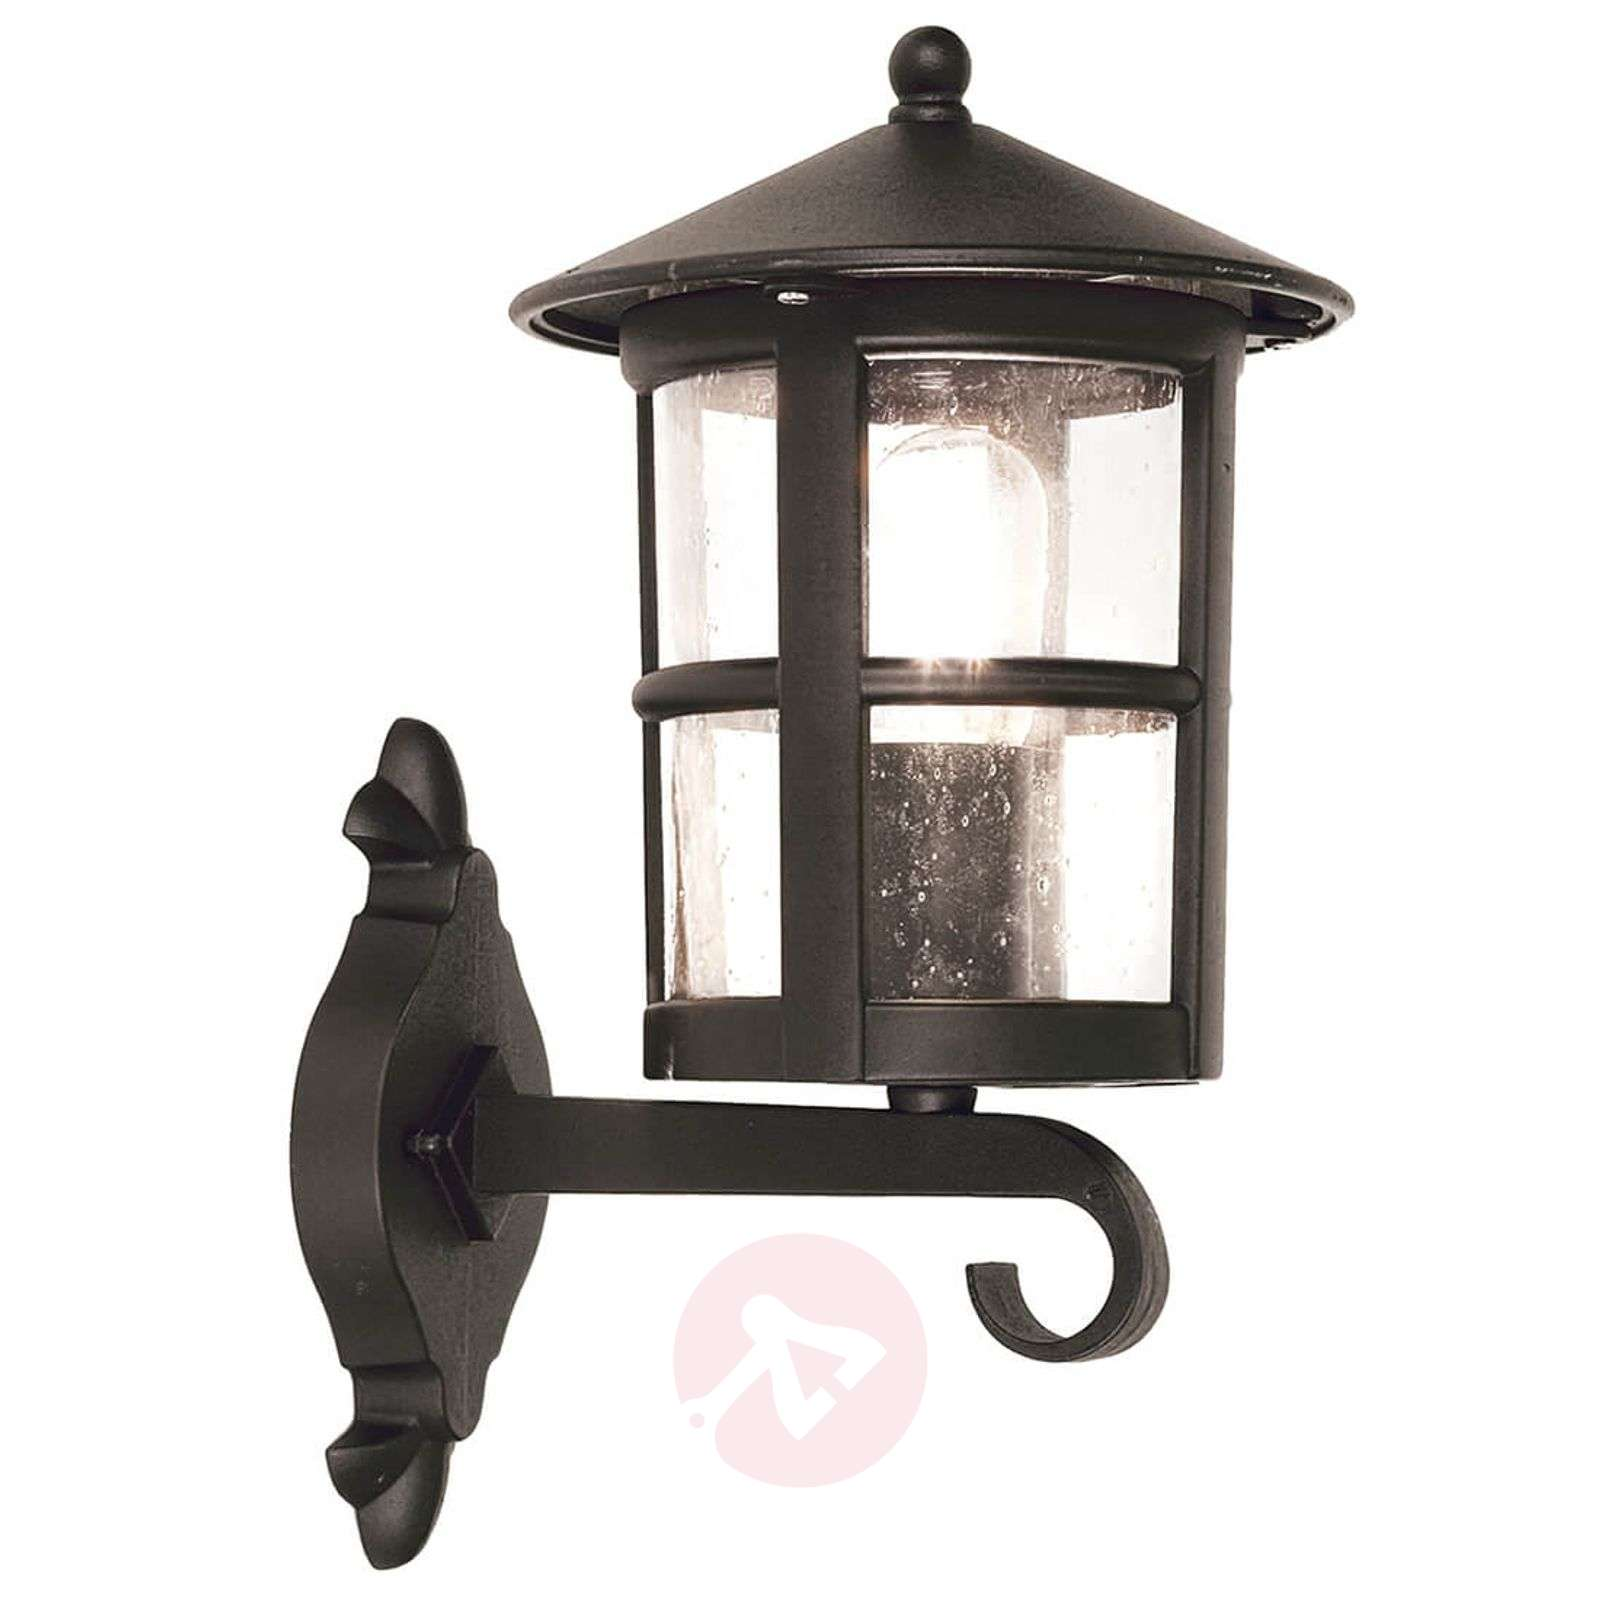 Hereford wall light for outdoors-3048697-01